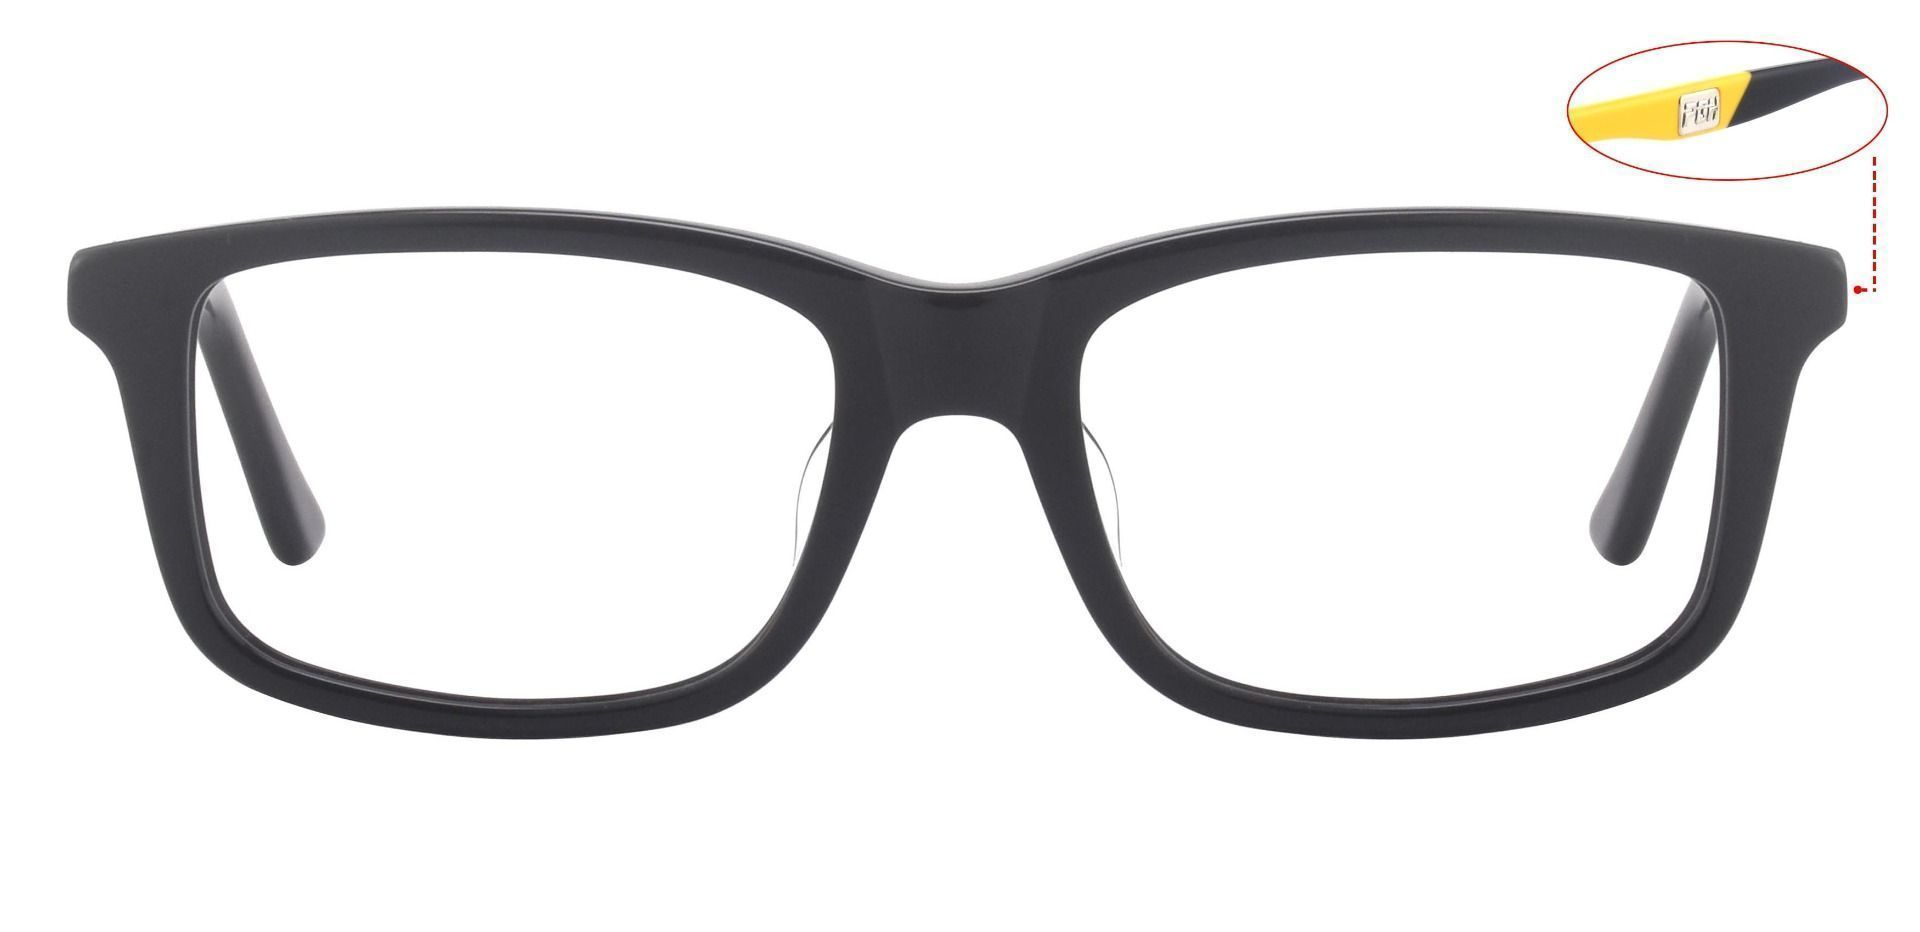 Allegheny Rectangle Reading Glasses - Black-yellow